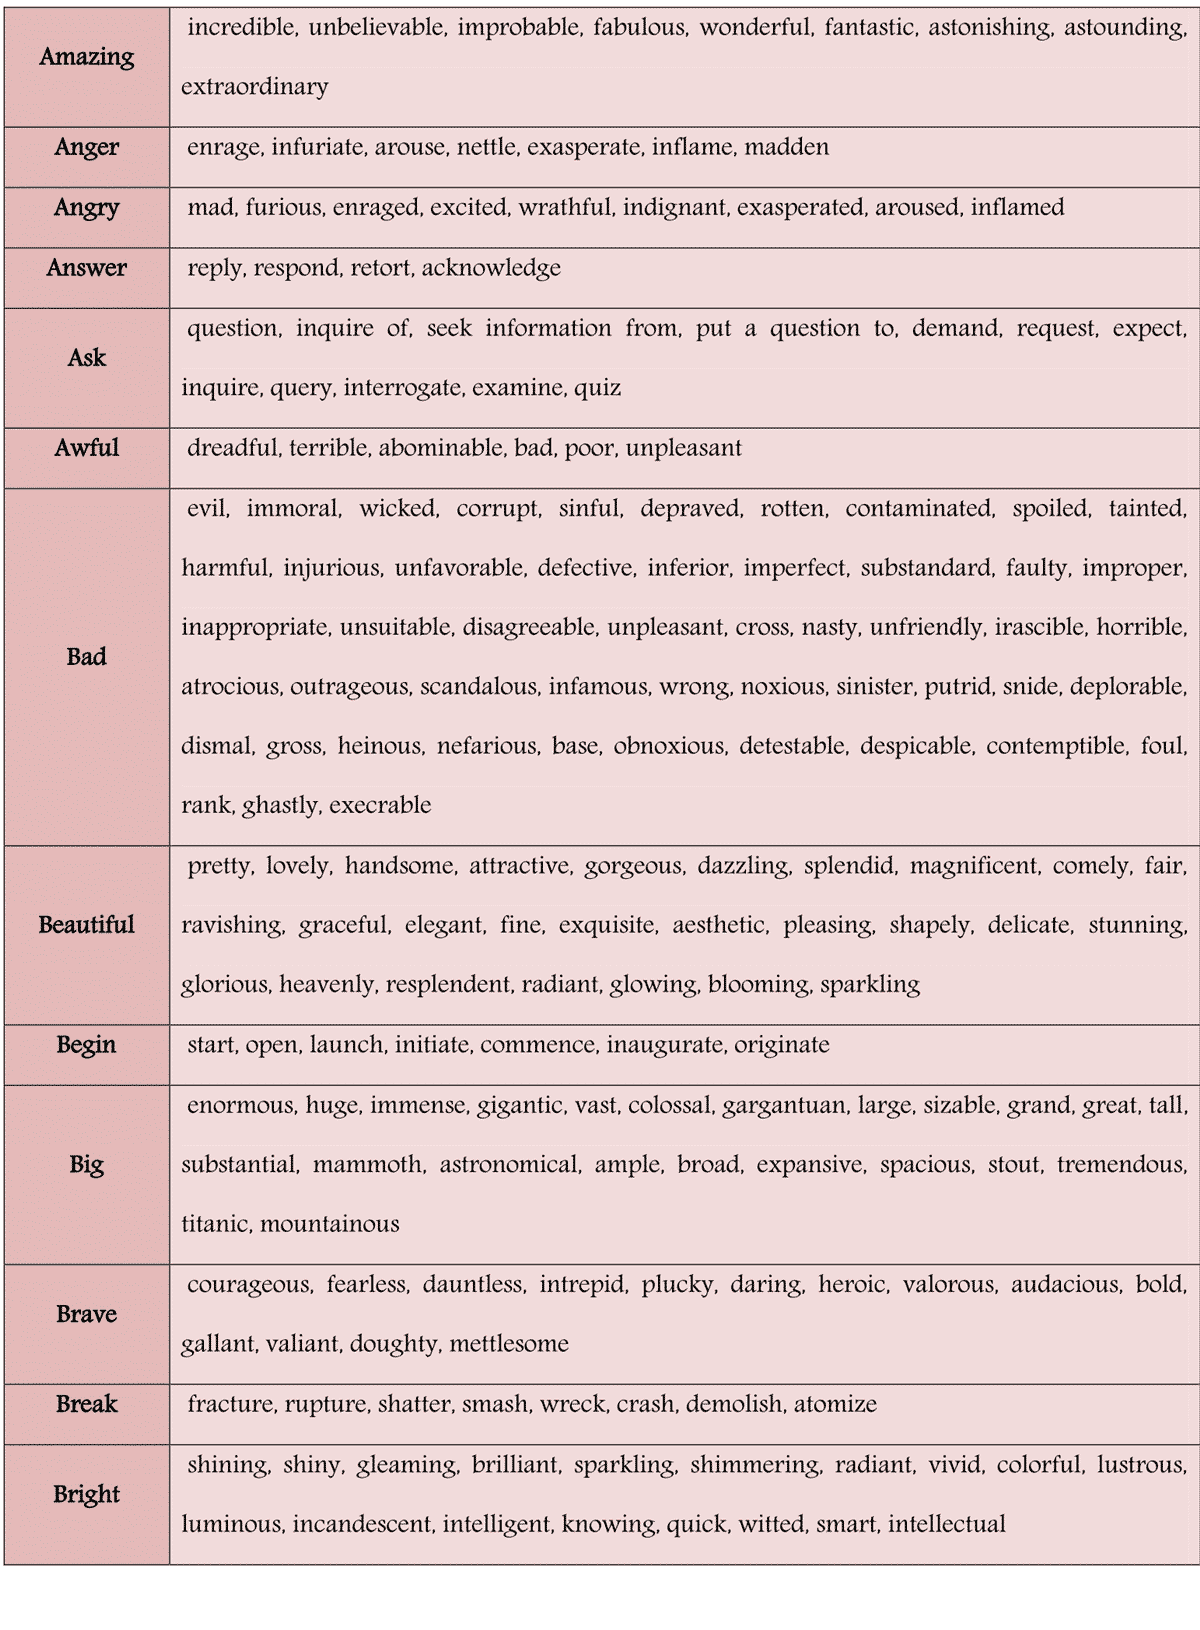 List of 100 Common Synonyms for Improving Your English 2